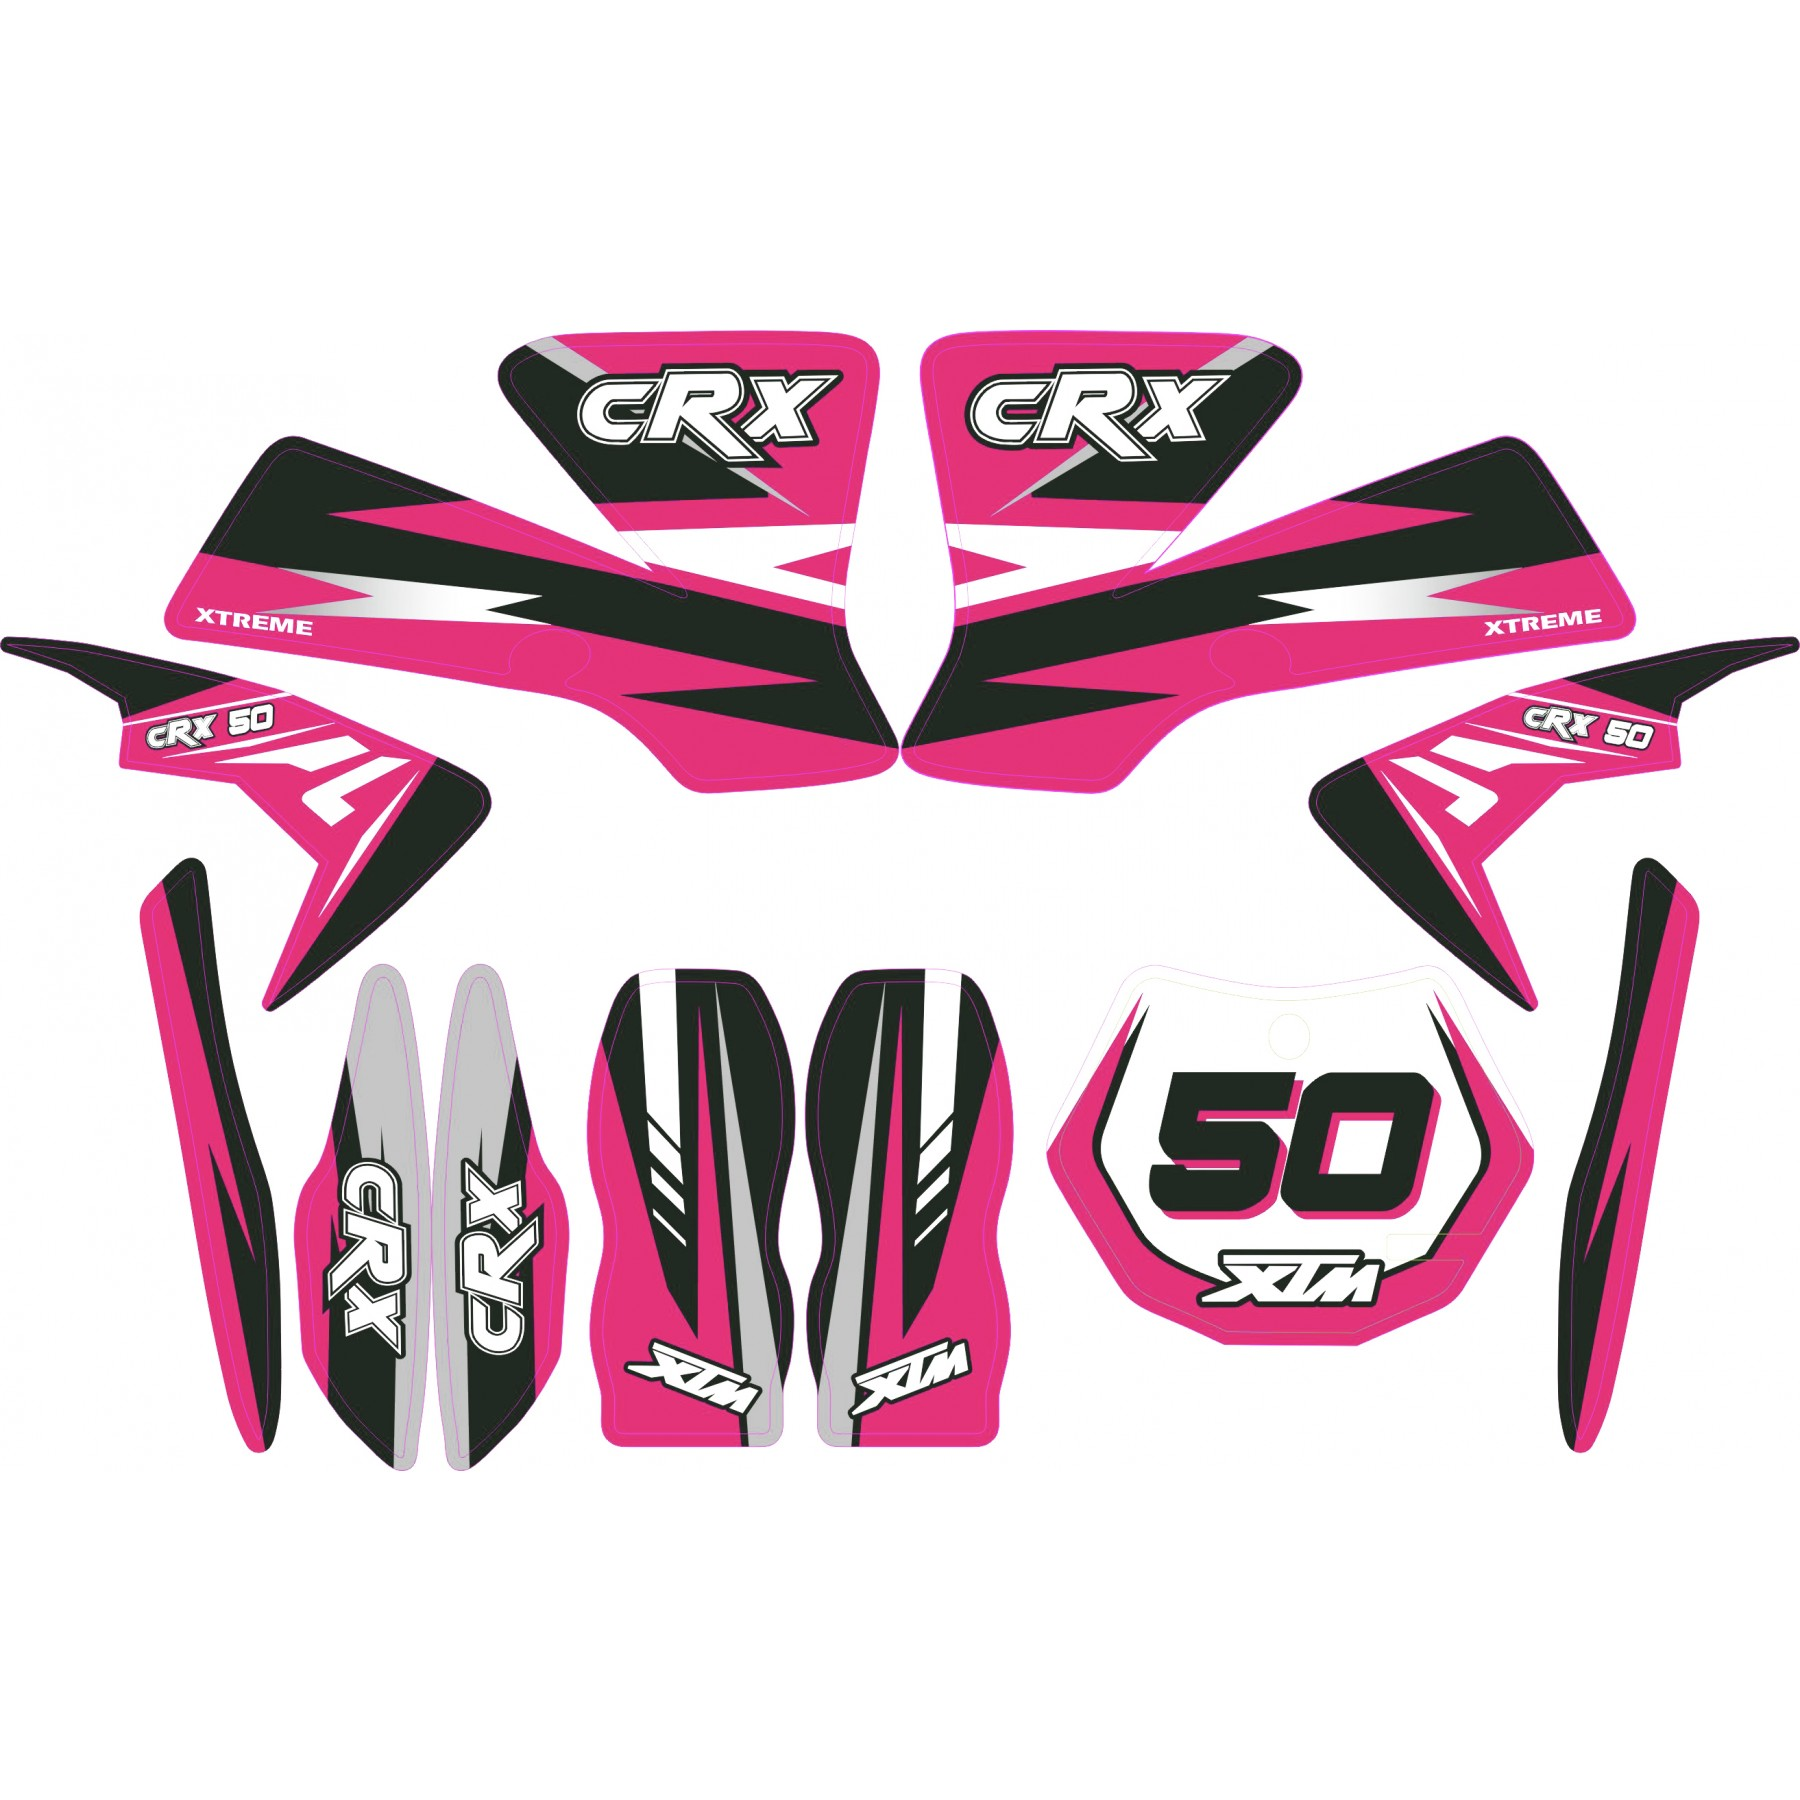 MINI DIRT BIKE XTM CRX 50 STICKER KIT / DECALS / TRANSFERS IN PINK